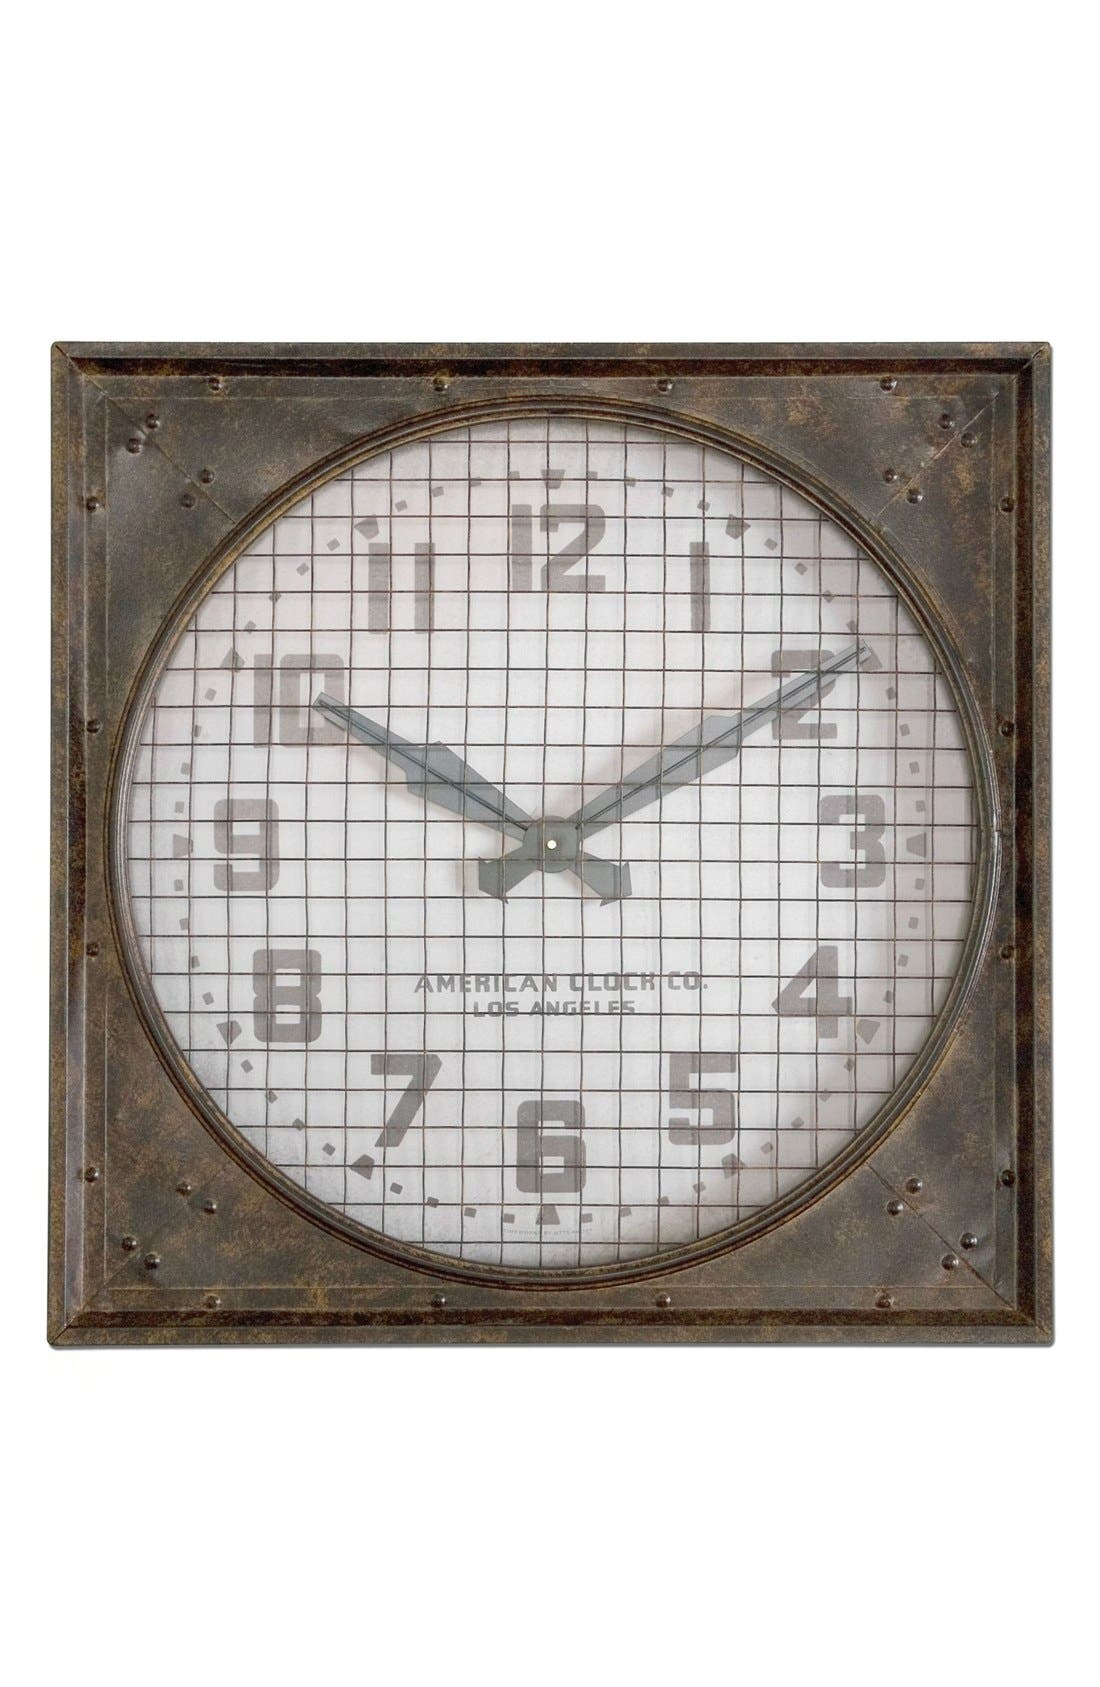 Alternate Image 1 Selected - Uttermost 'Warehouse' Wall Clock with Grill